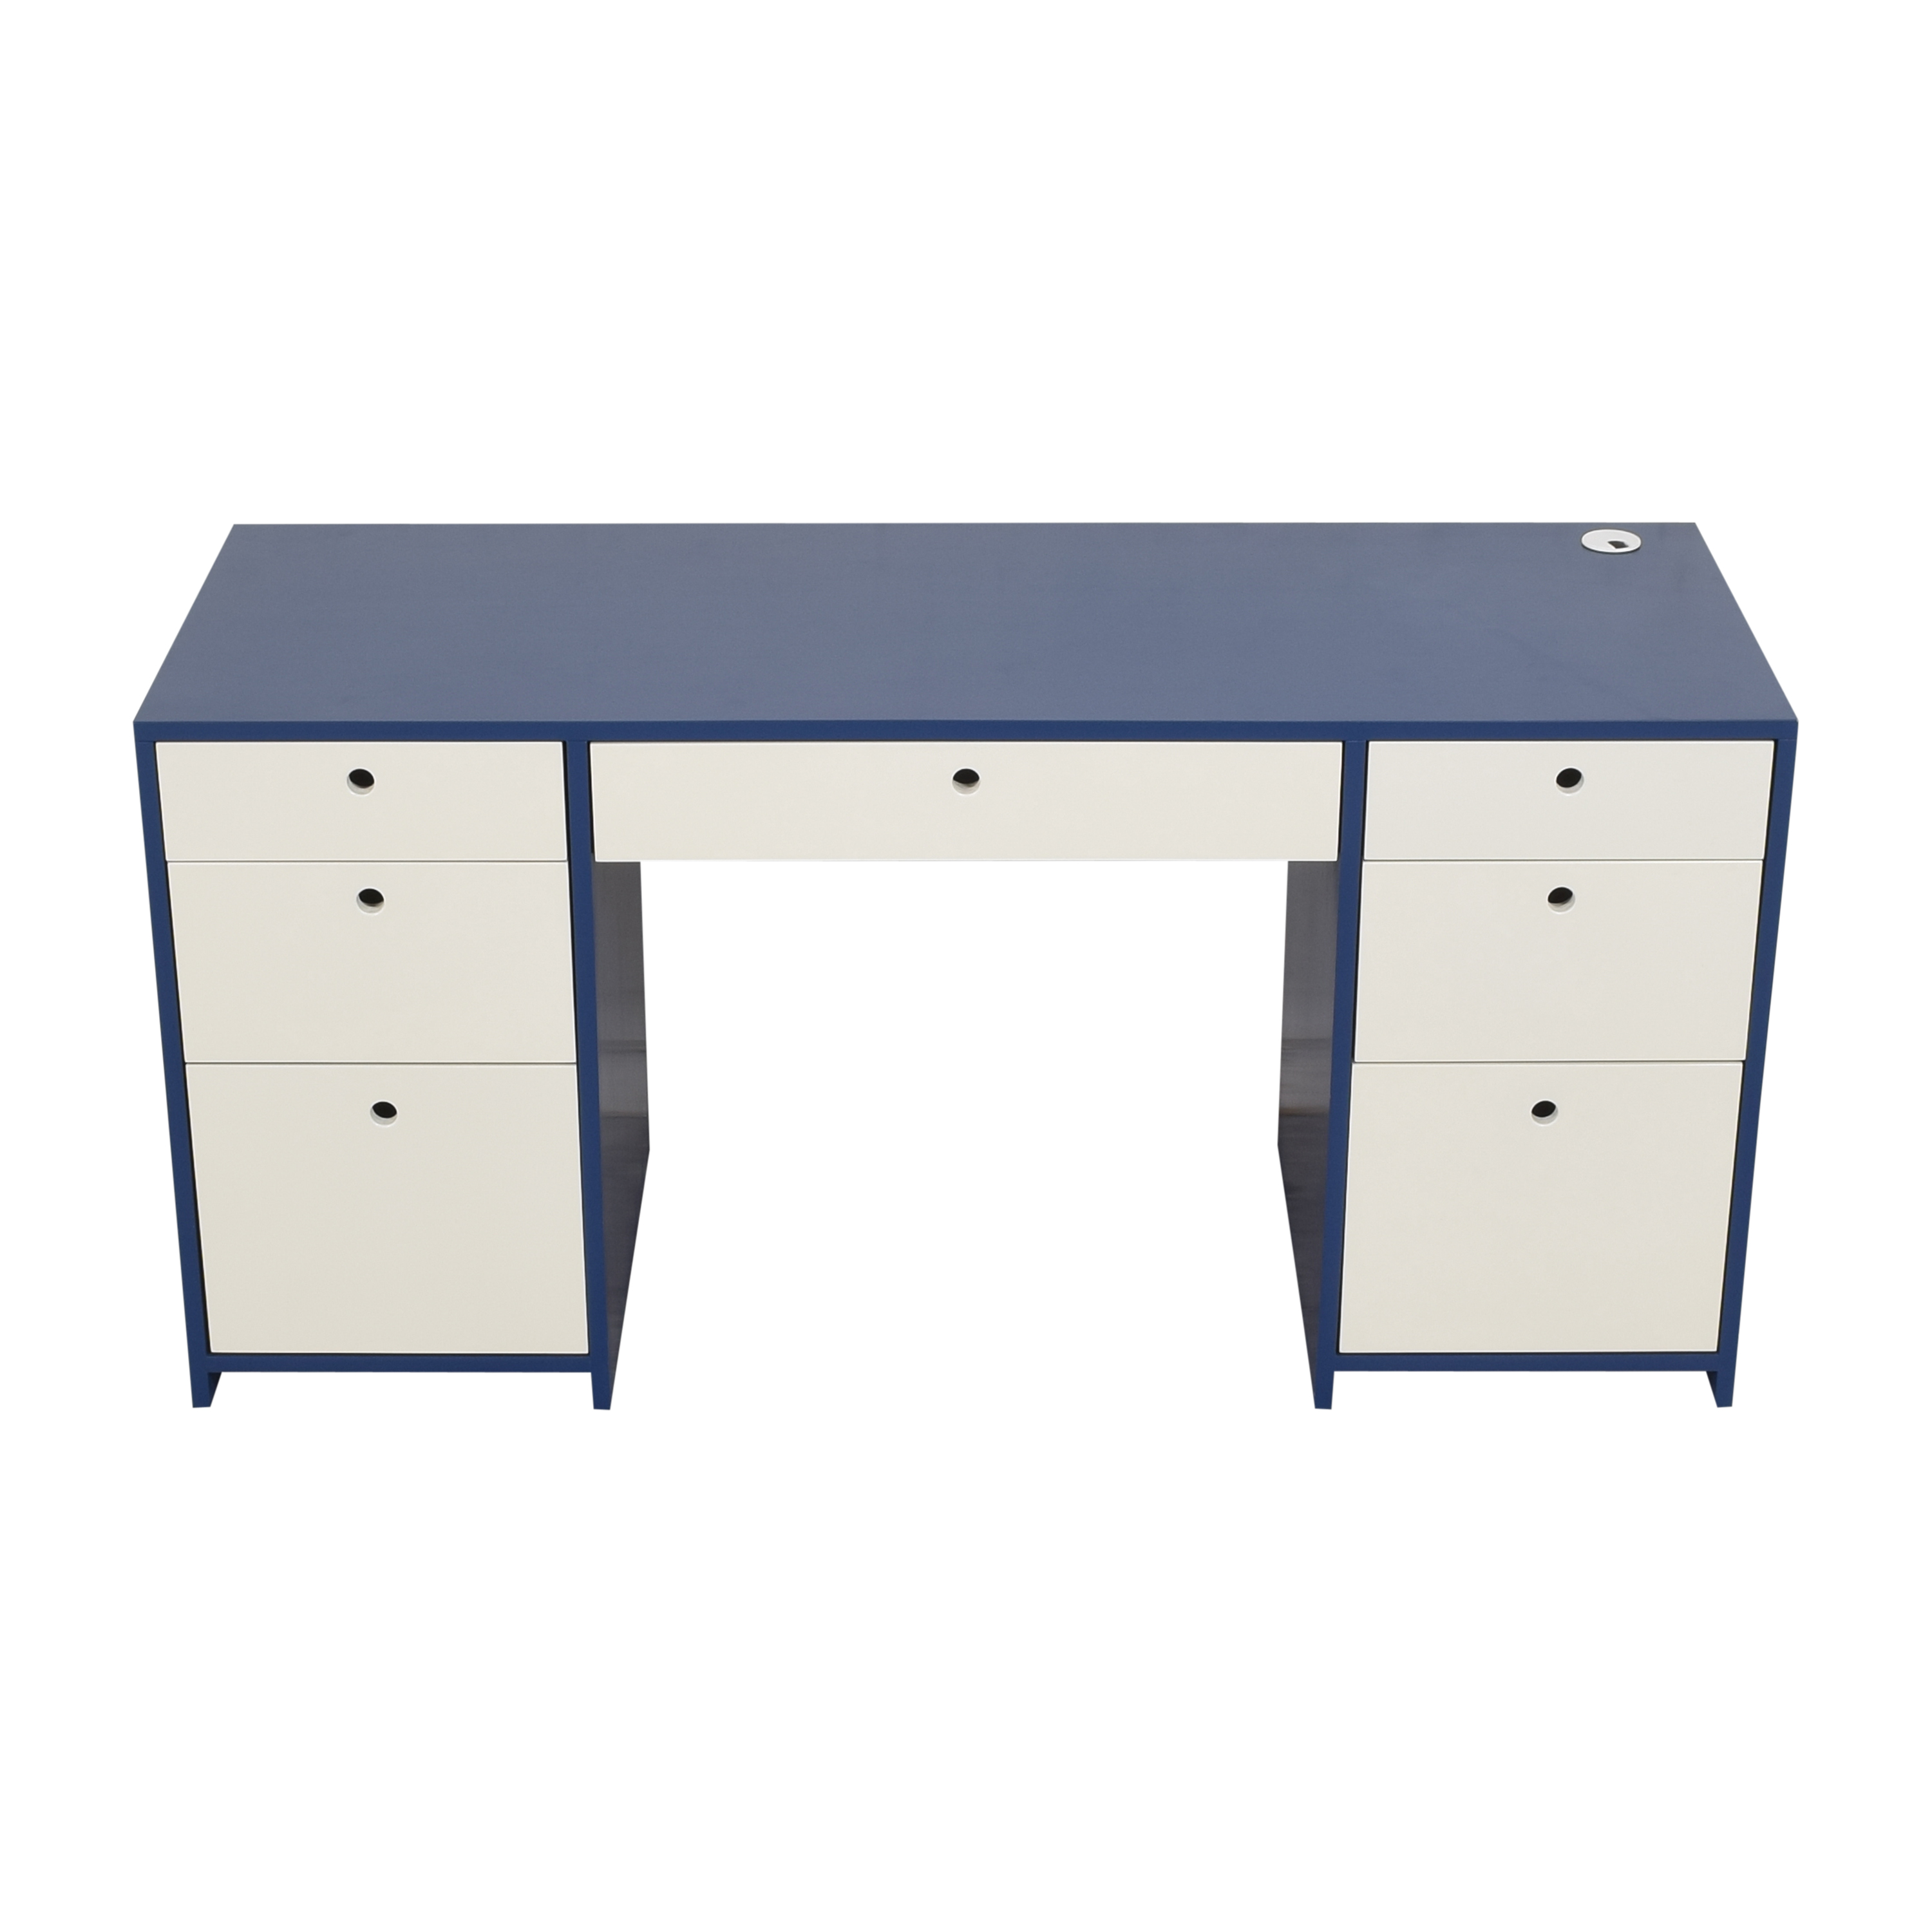 shop ducduc Parker Doublewide Desk ducduc Home Office Desks